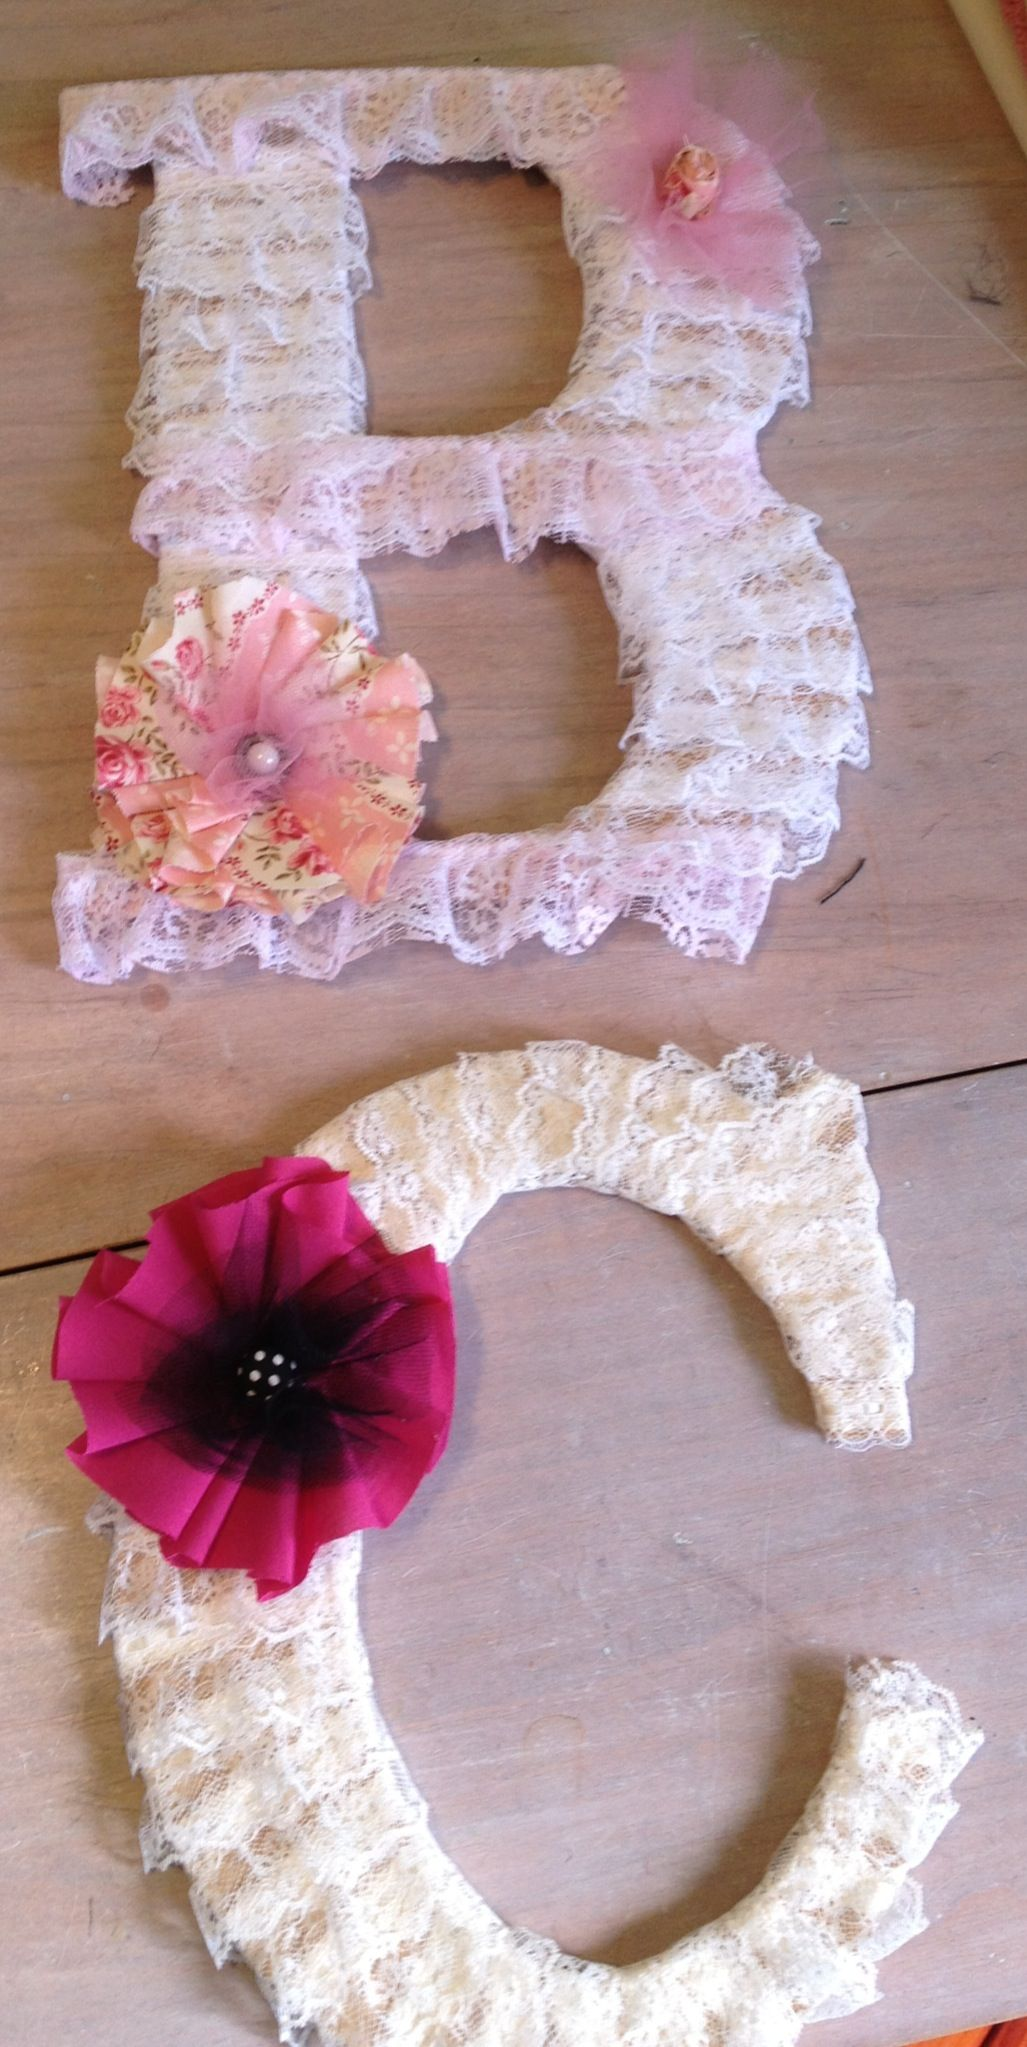 Wooden letters for crafts - Large Wooden Letters Wrapped With Lace Ribbon And Adorned With No Sew Fabric Flowers